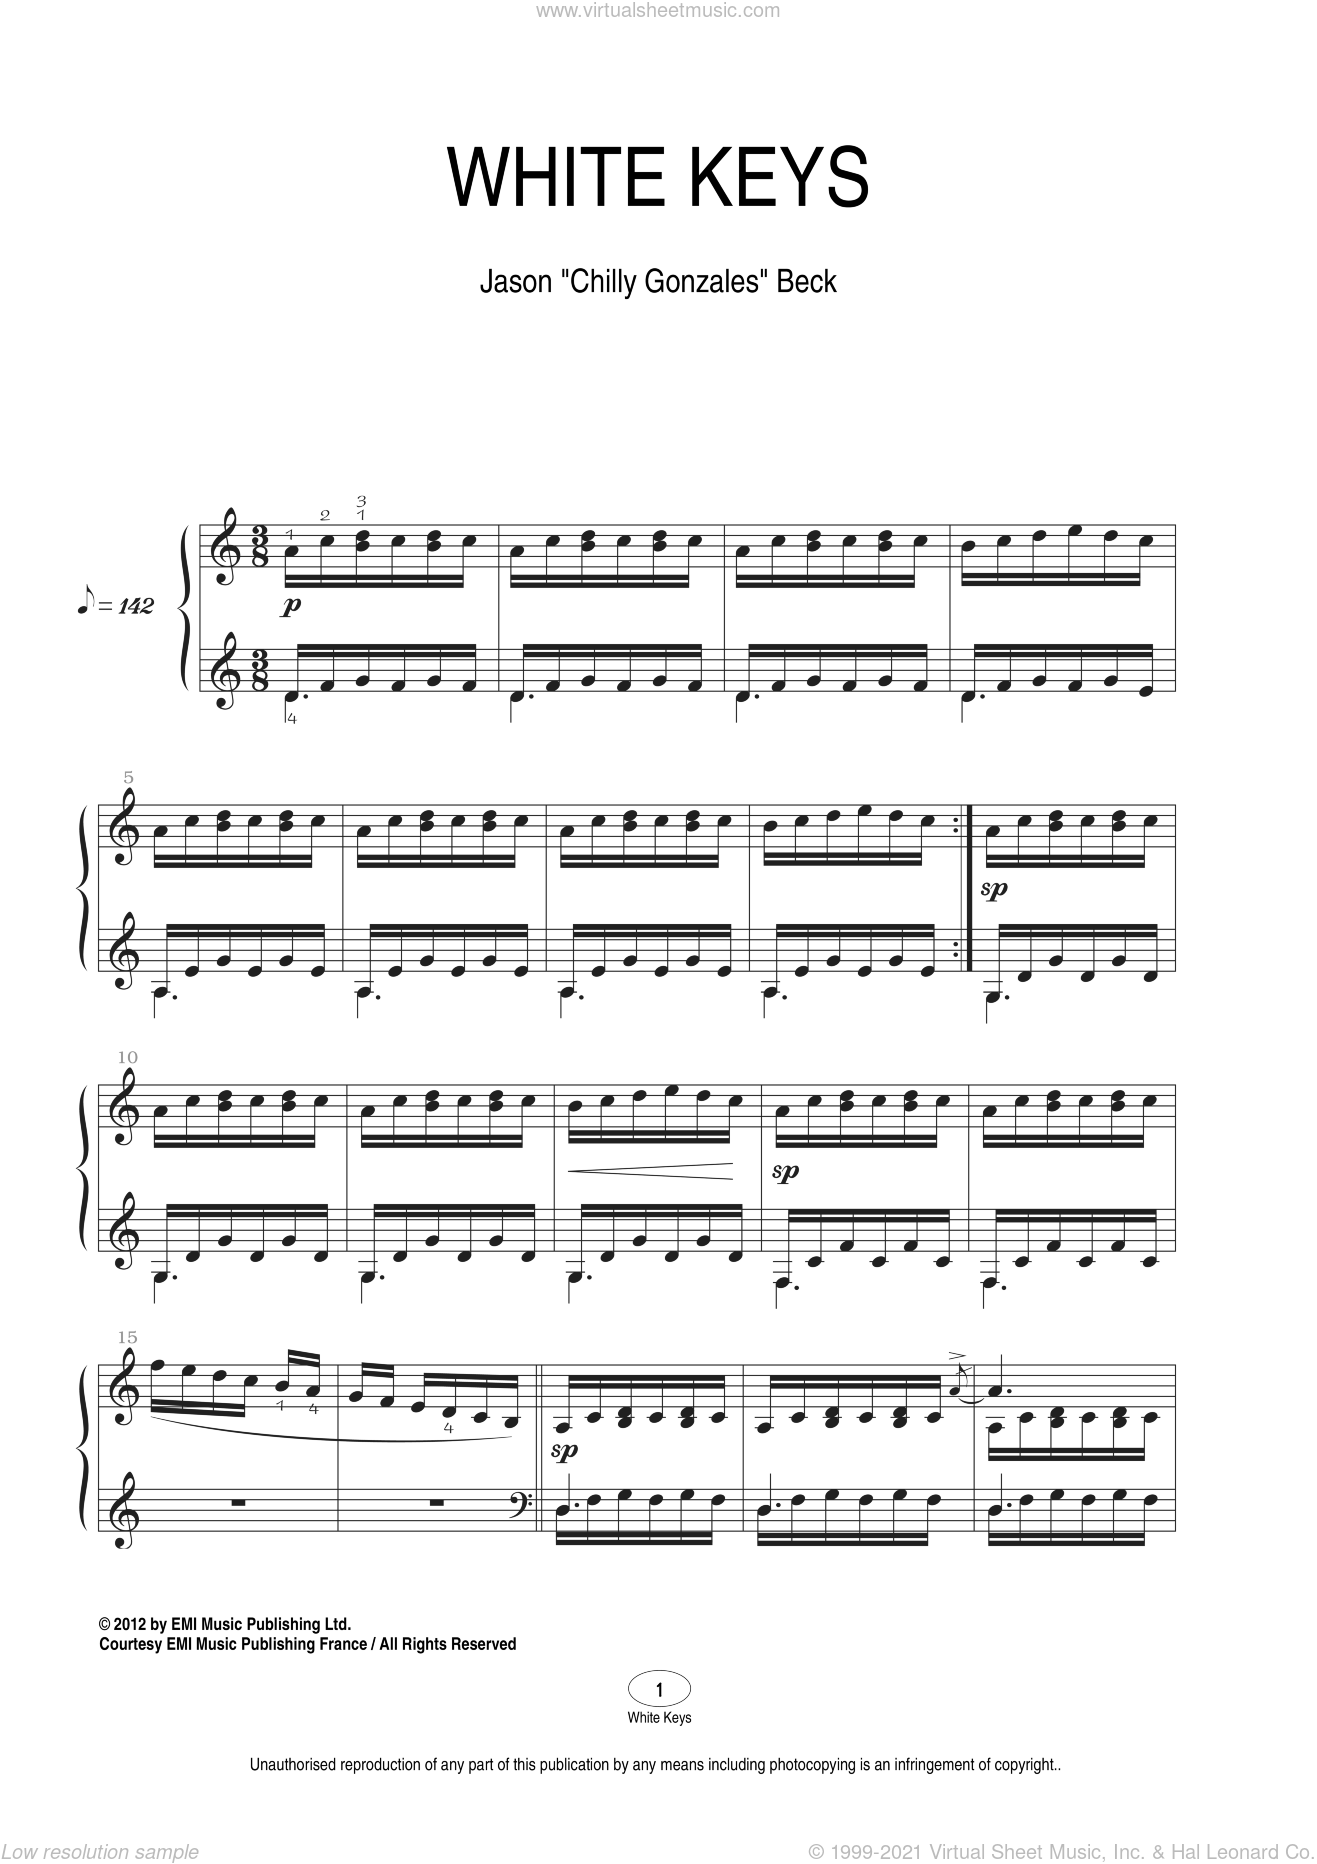 White Keys sheet music for piano solo by Chilly Gonzales